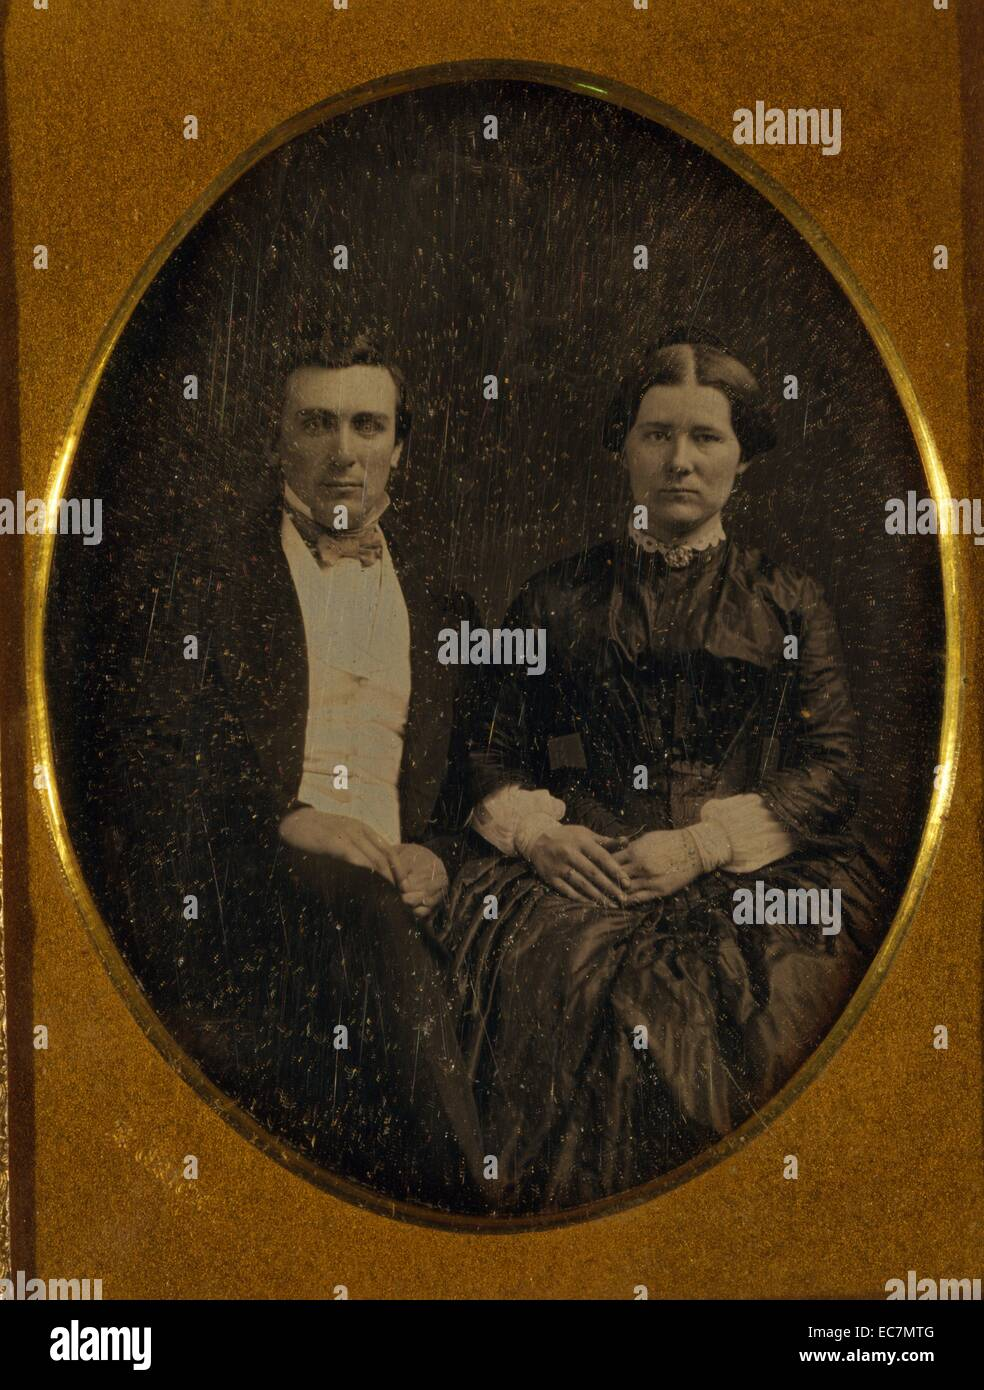 Unidentified man and woman, three-quarters length portrait, seated - Stock Image